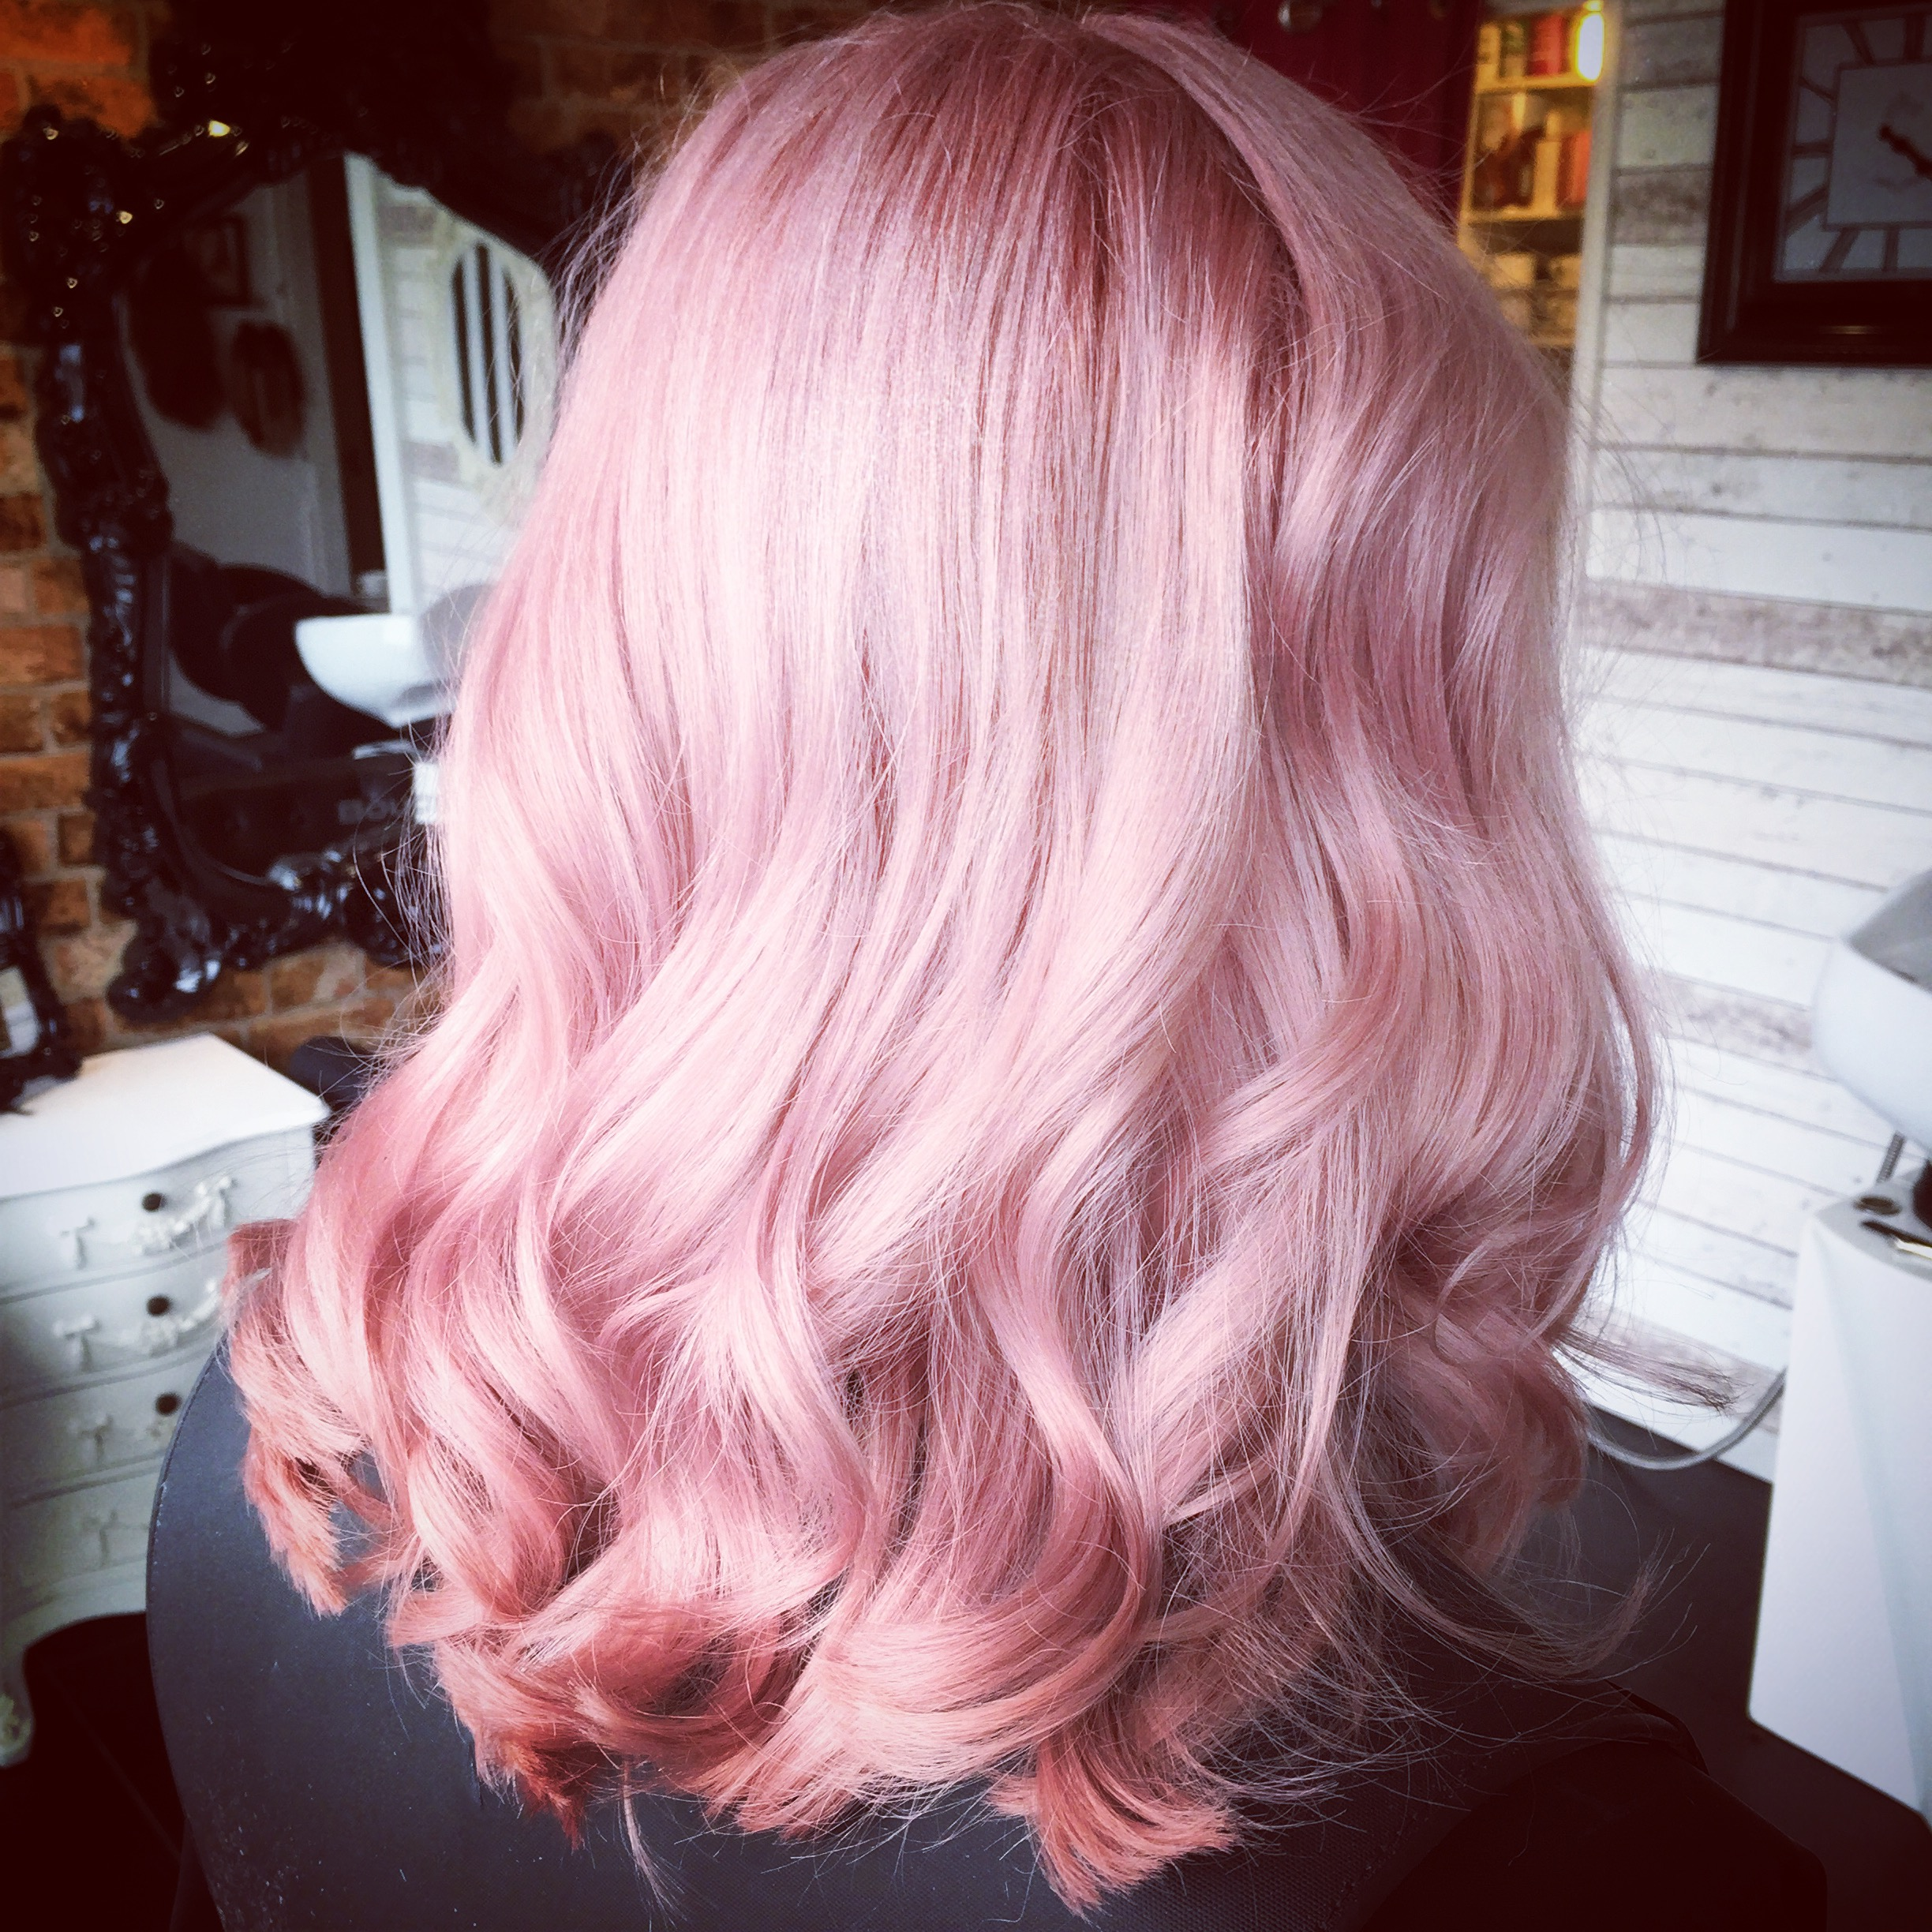 pink hair created using boreal professional products by hair experts